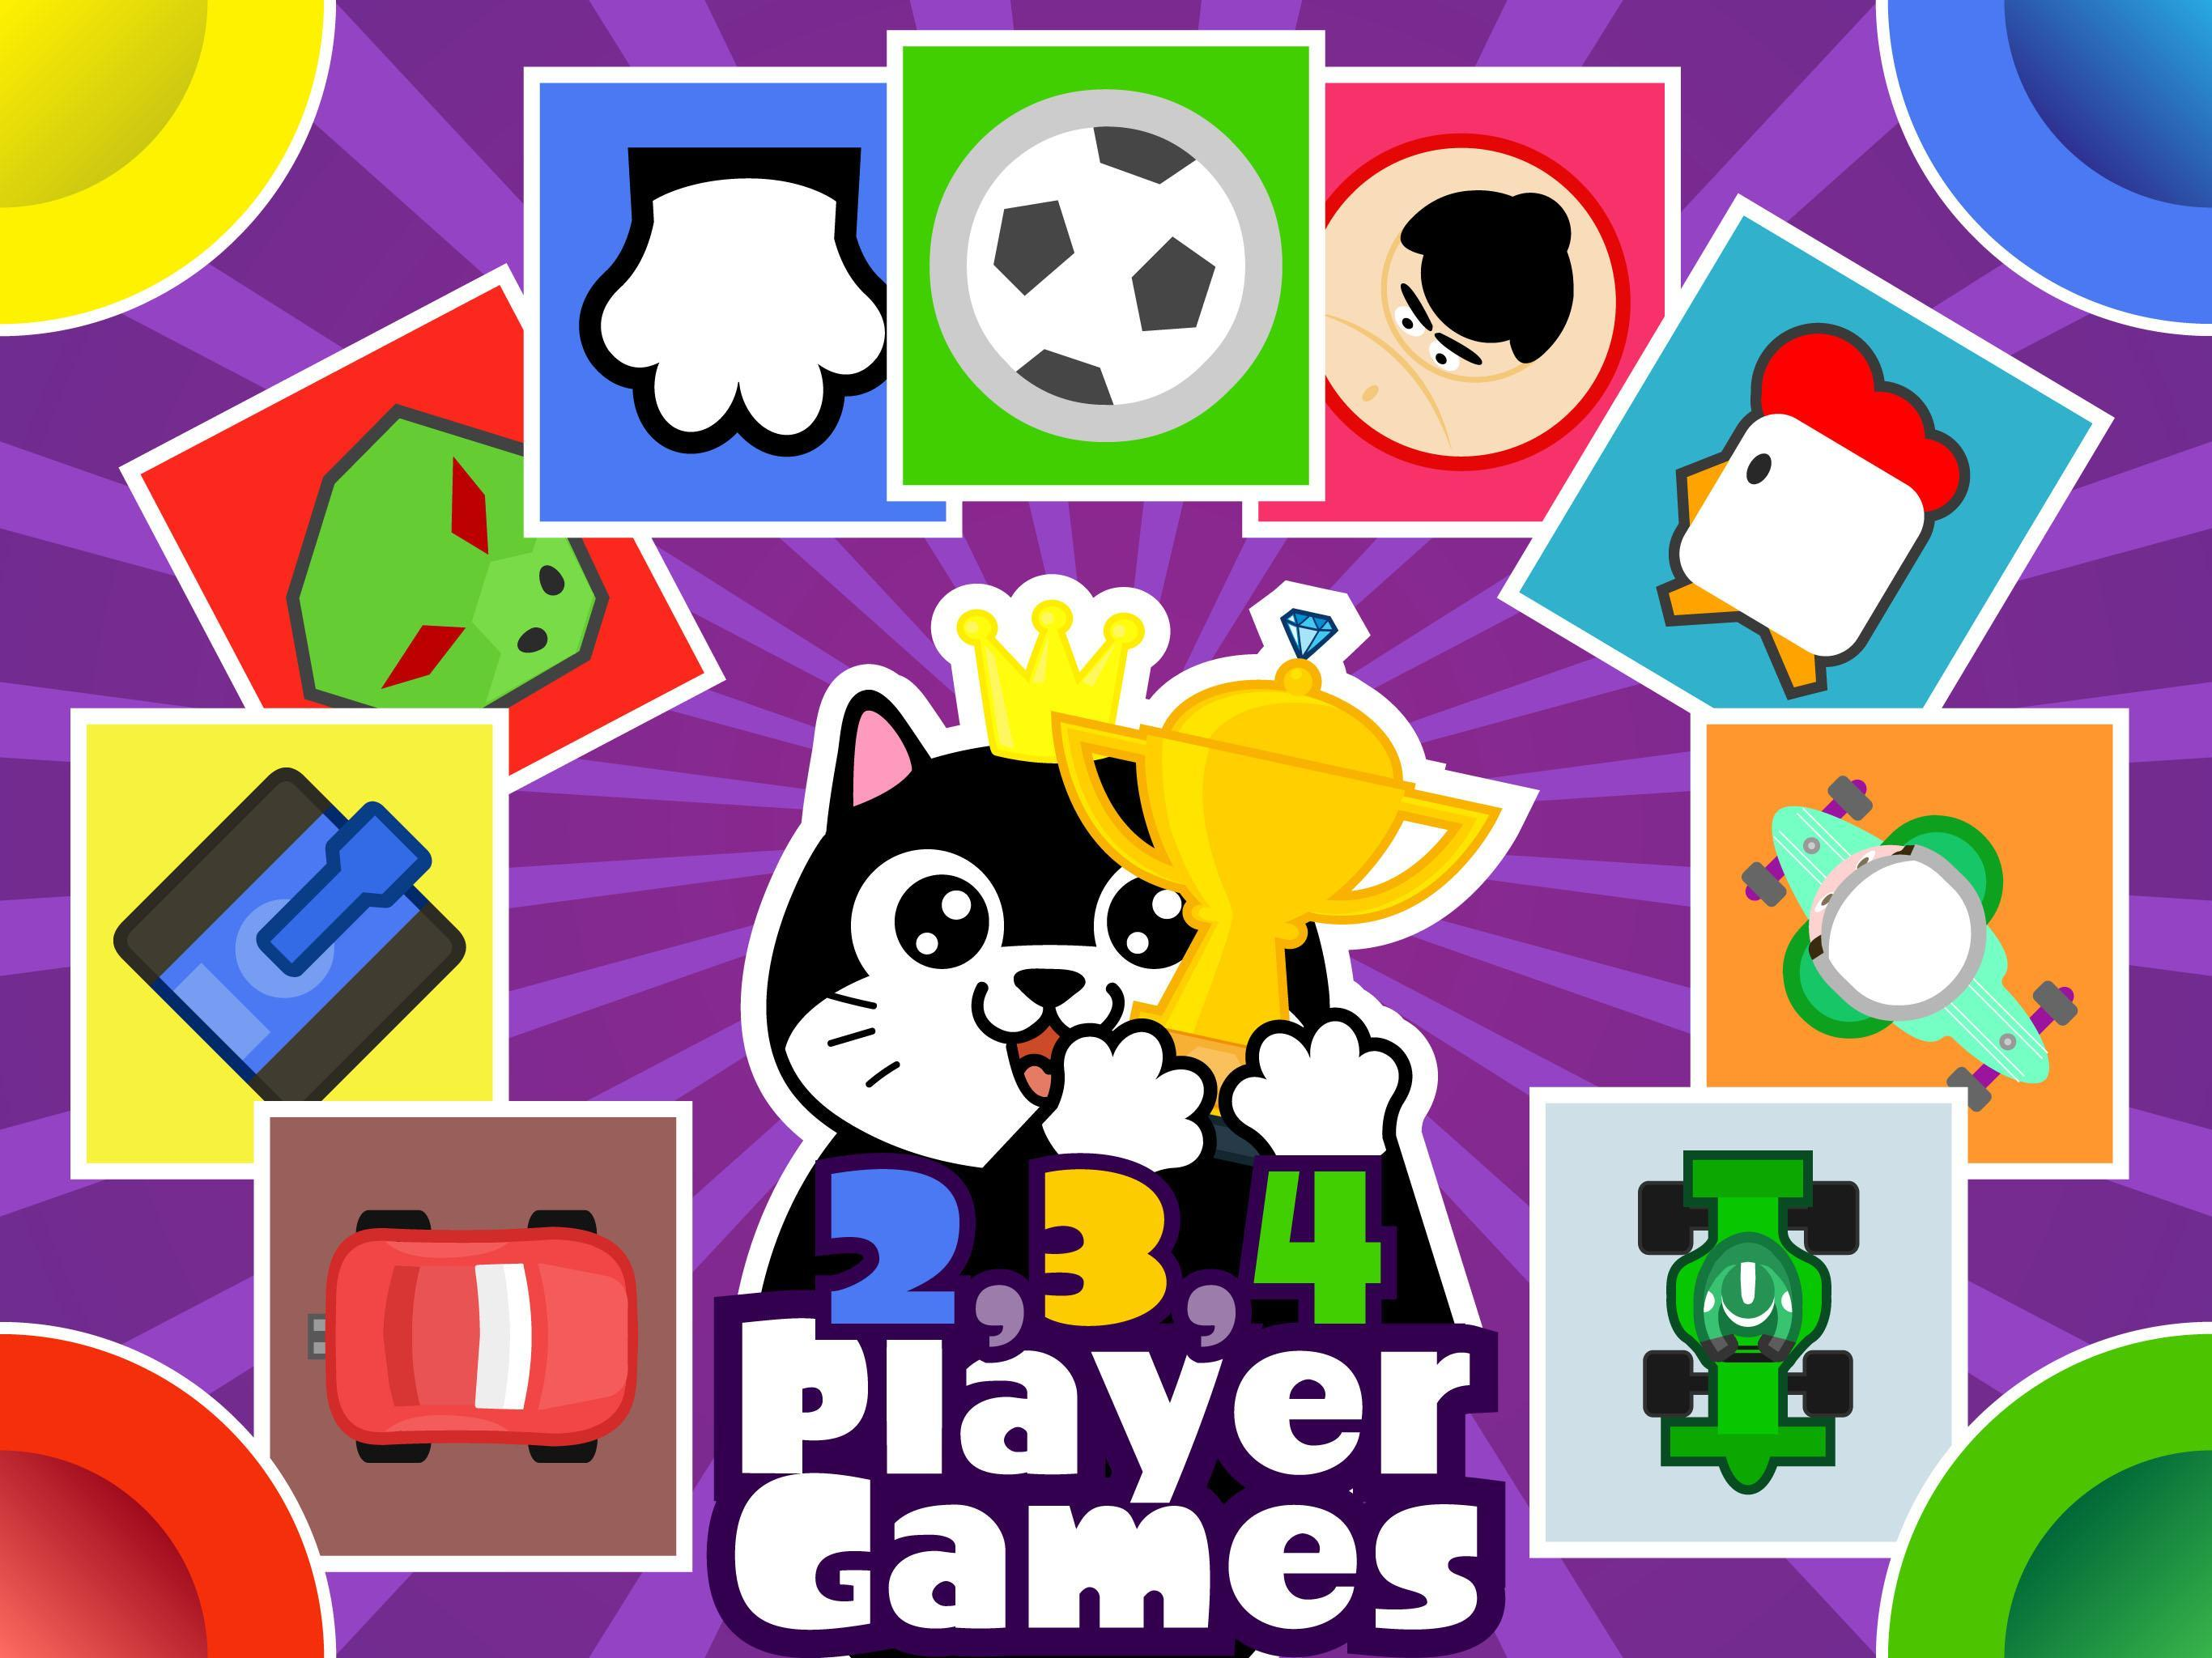 2 3 4 Player Mini Games app for Android download 2019